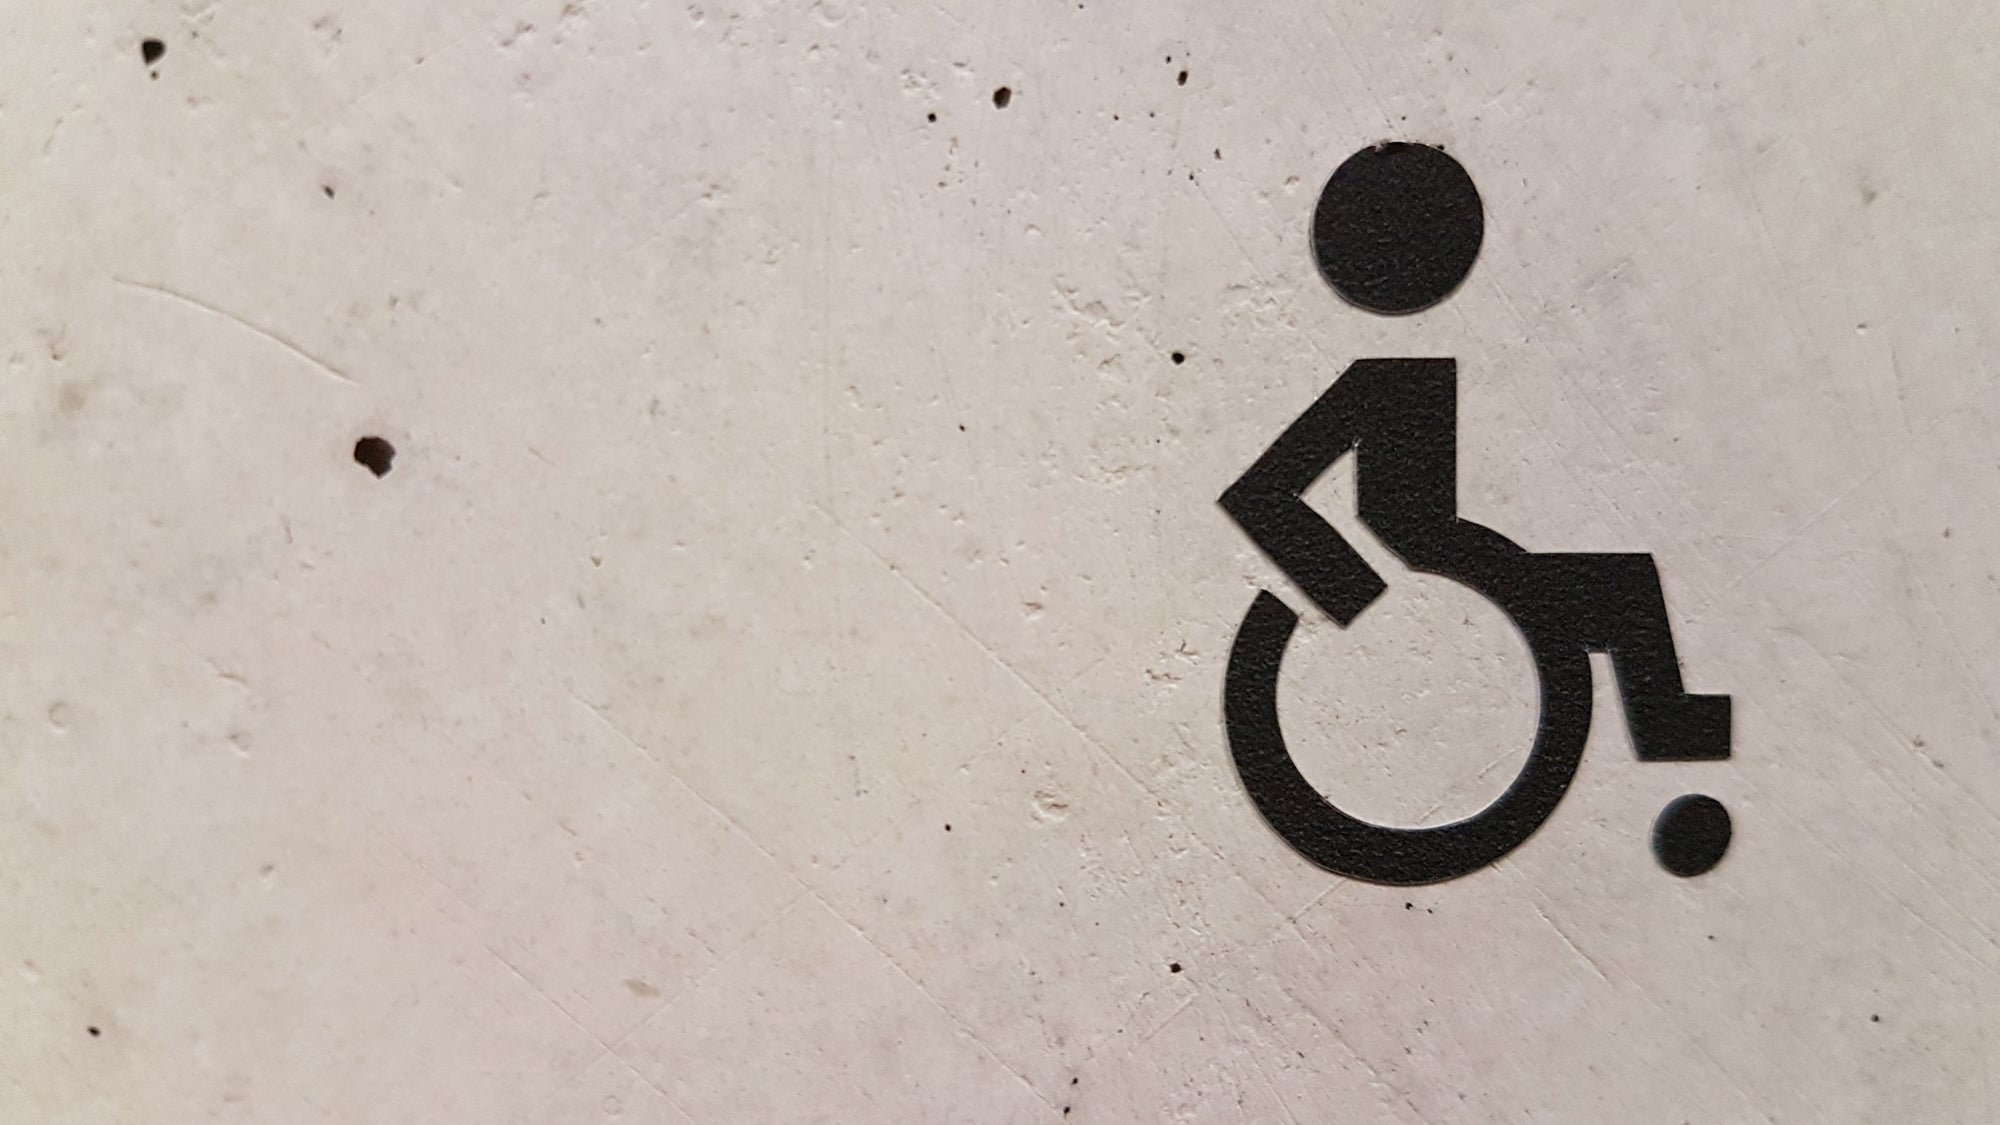 a wheelchair symbol representing injuries resulting from malpractice